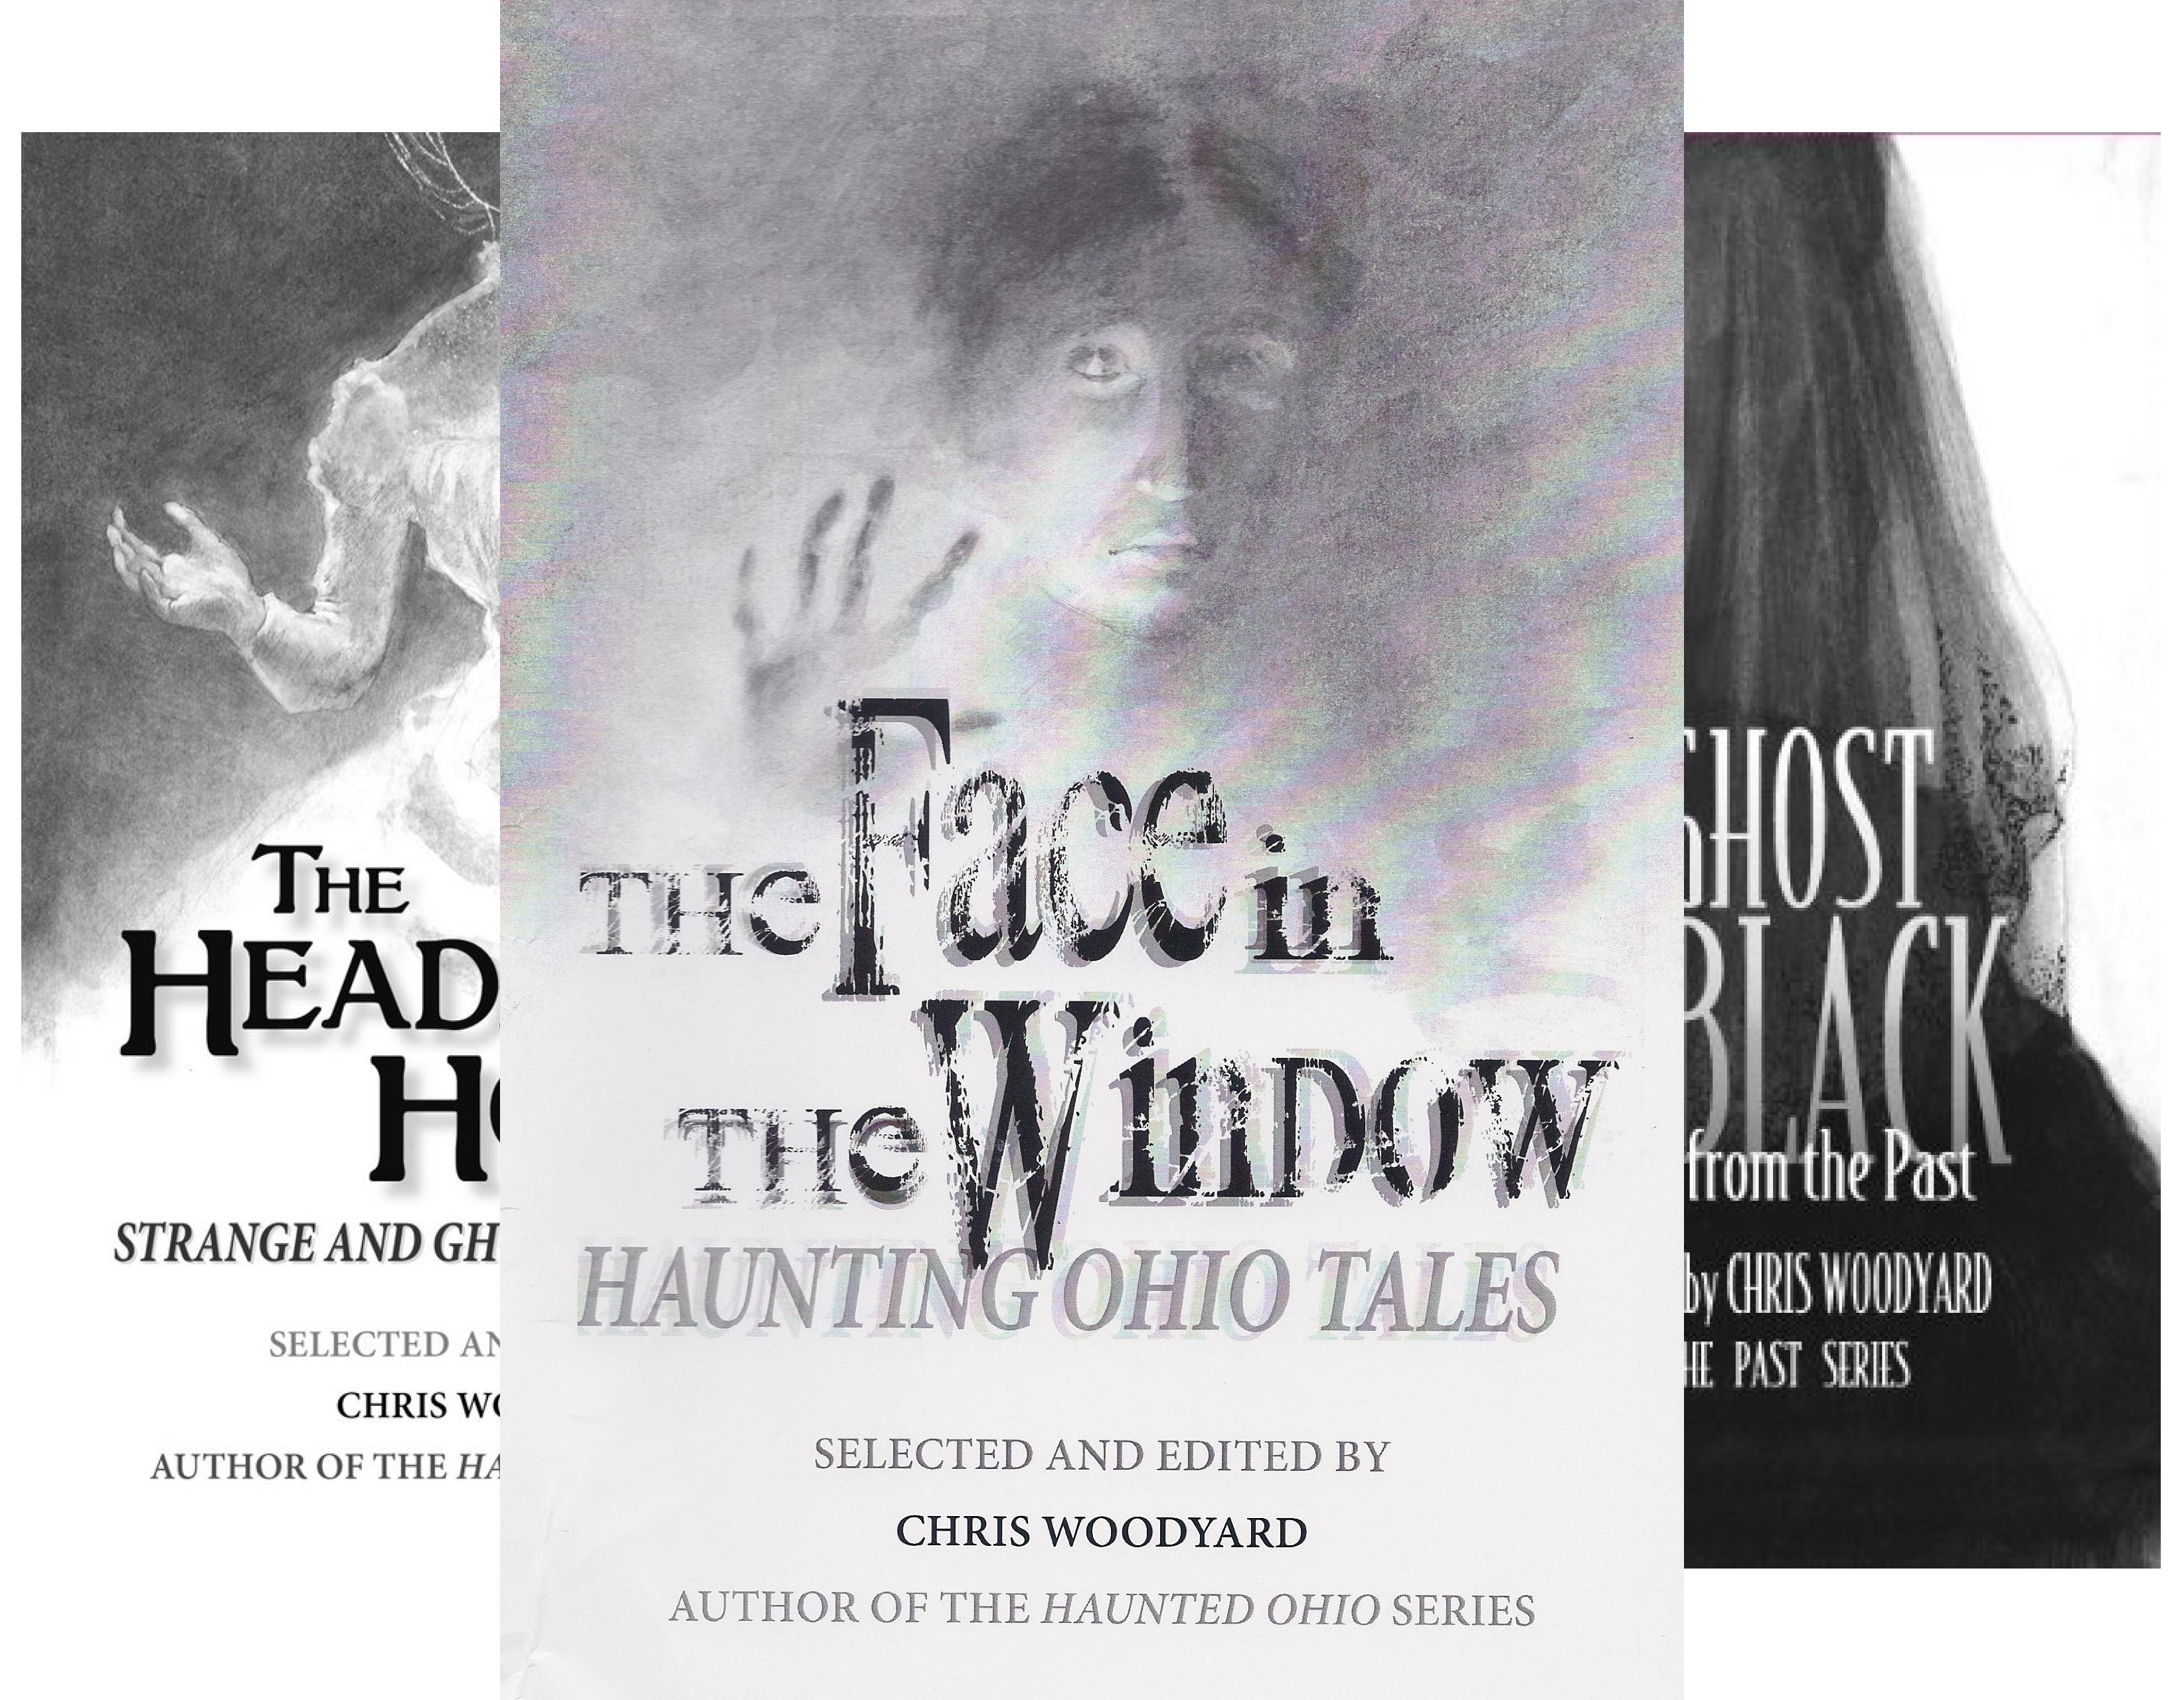 The Ghosts of the Past (4 Book Series)